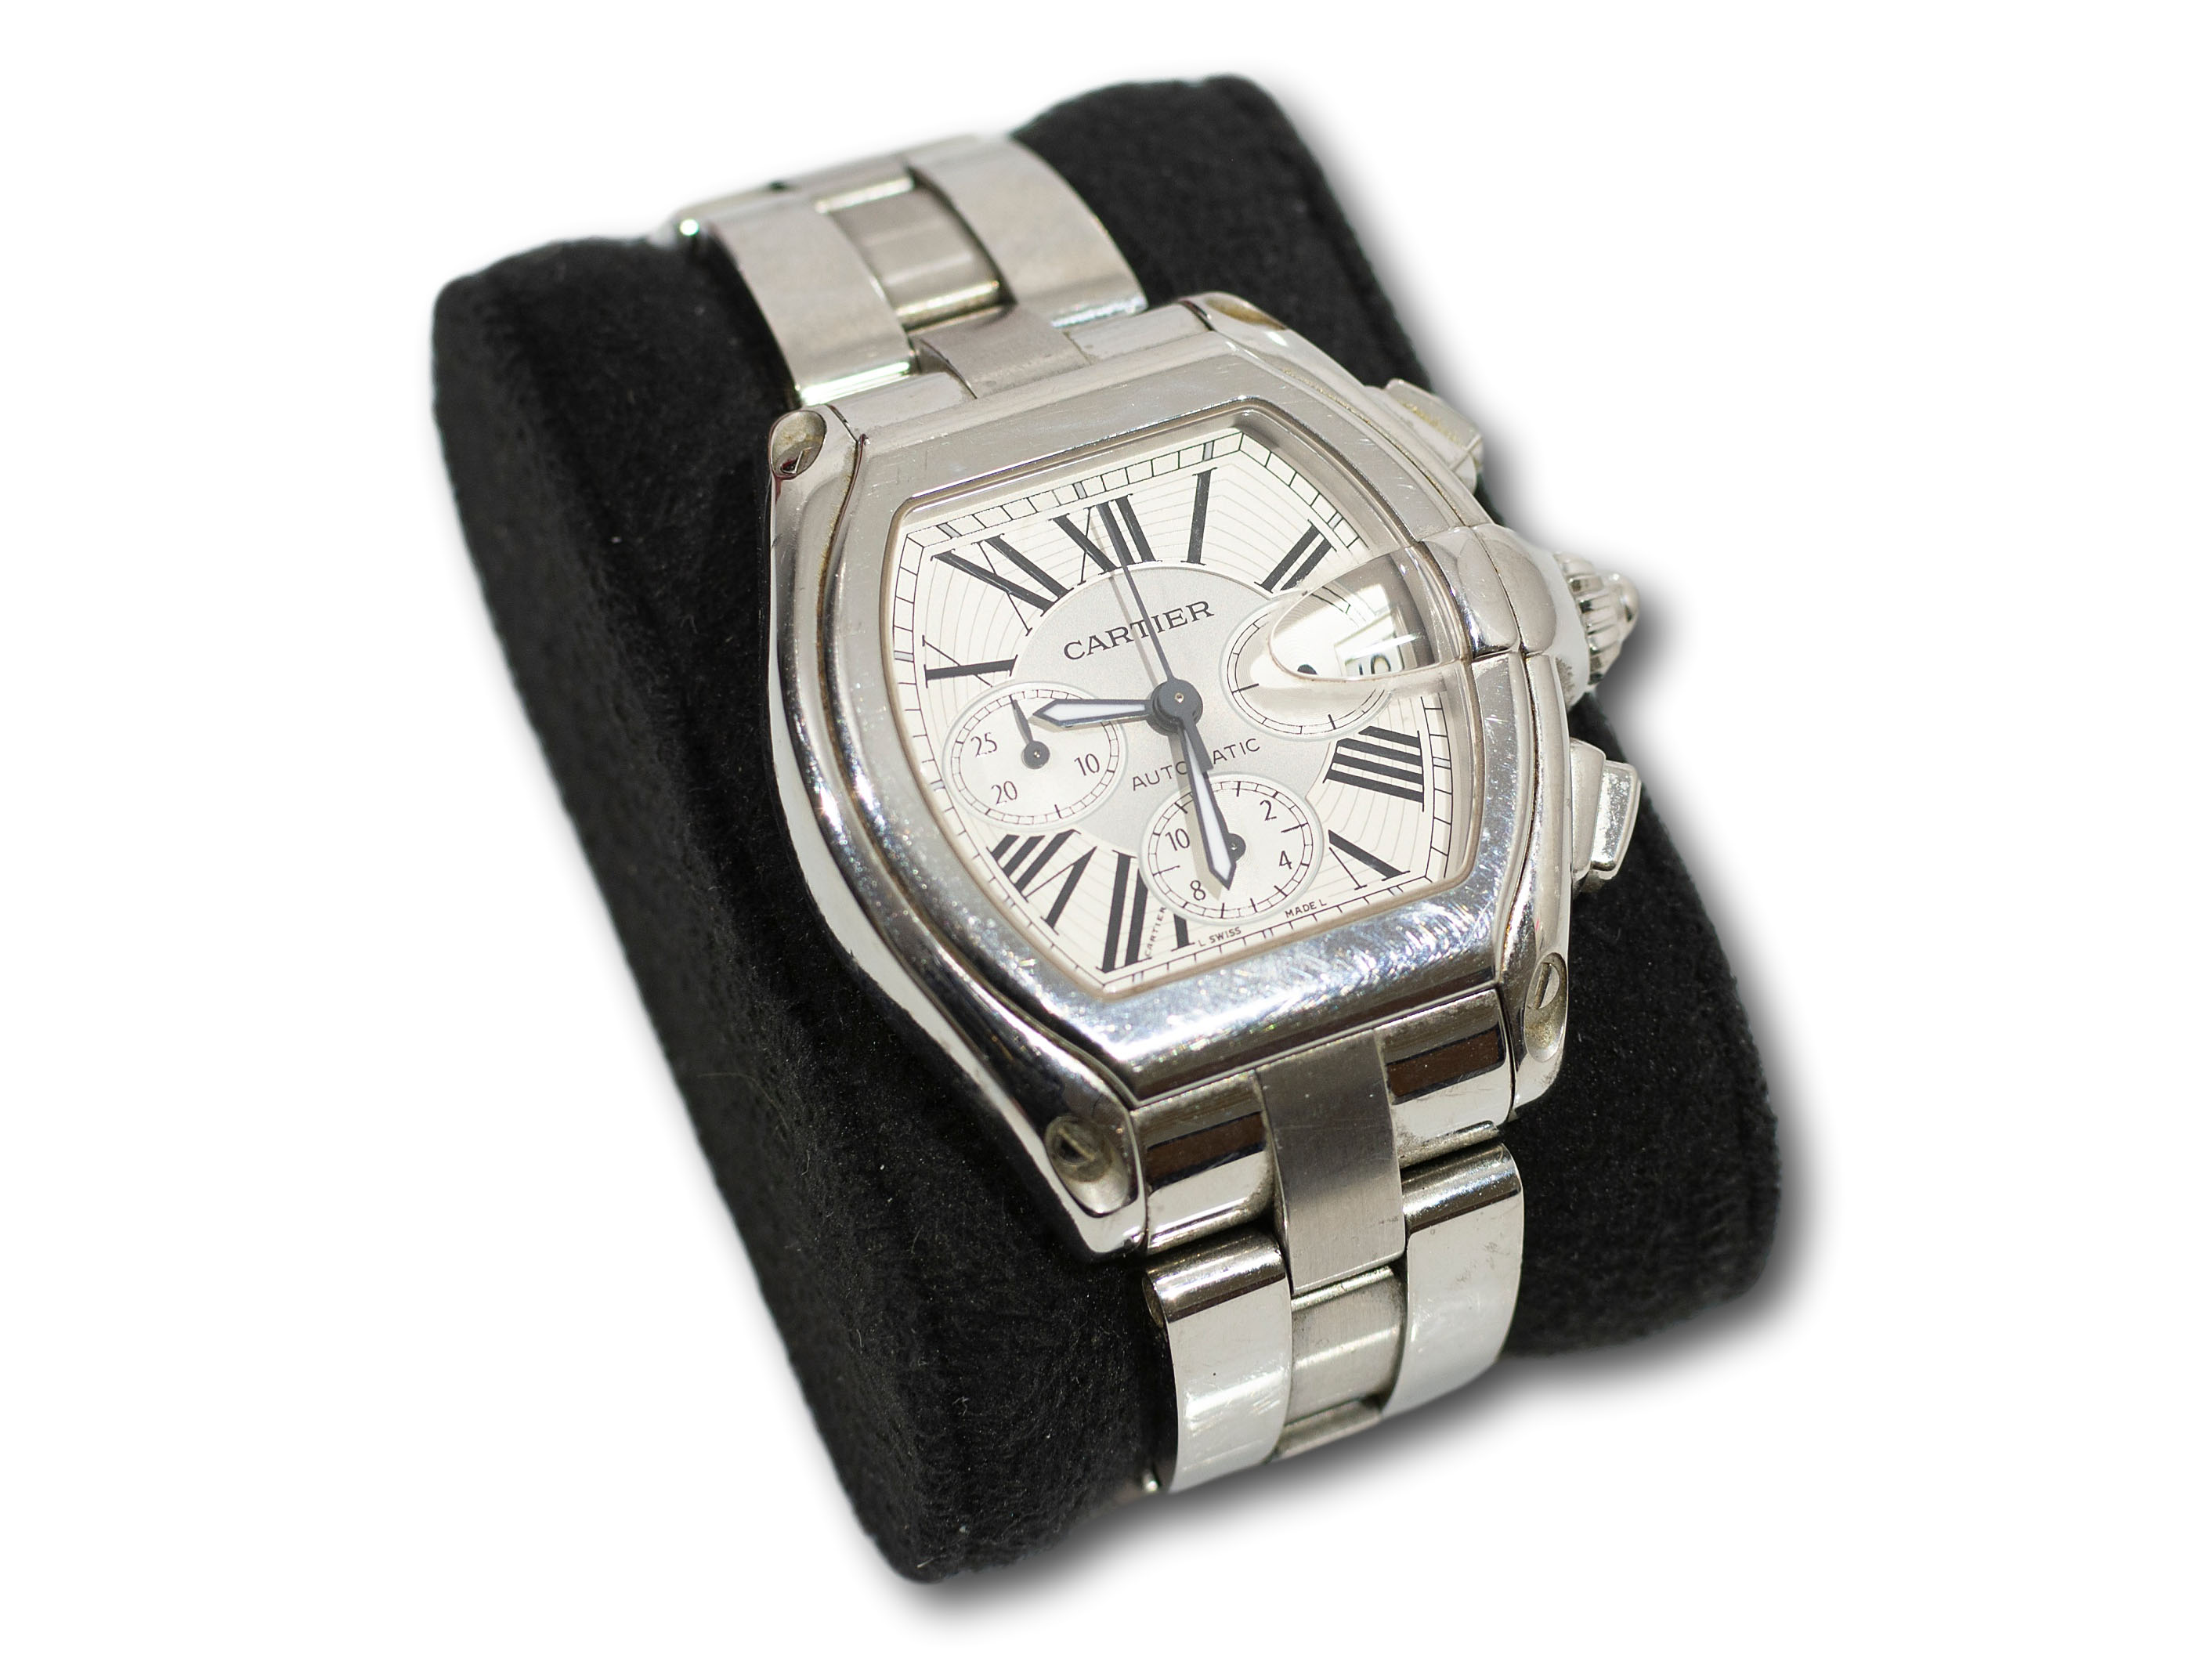 A Cartier Gents Wristwatch, A/F